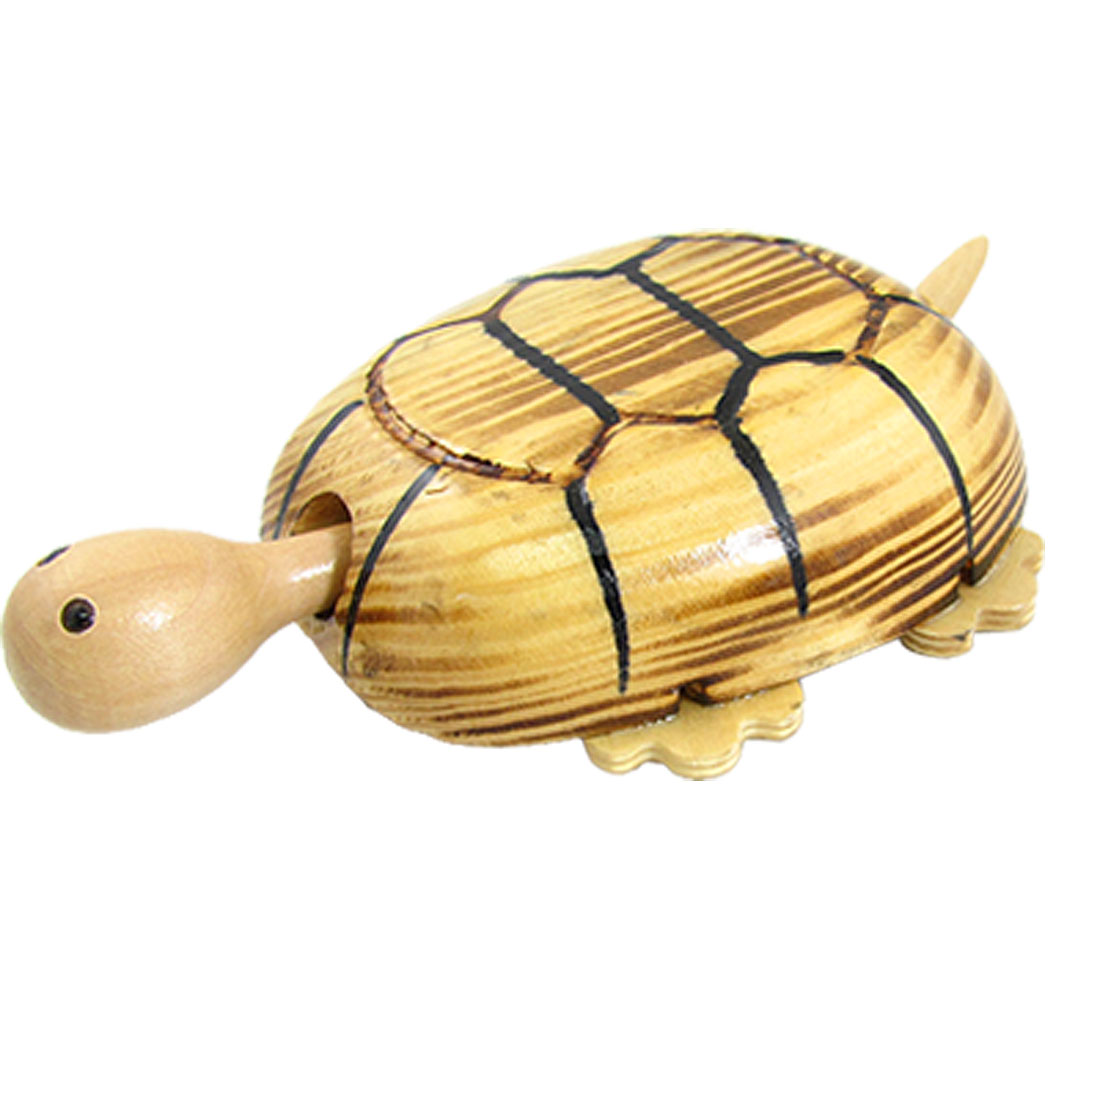 Children Wooden Hand Carve Tortoise Toy w 4 Wheels